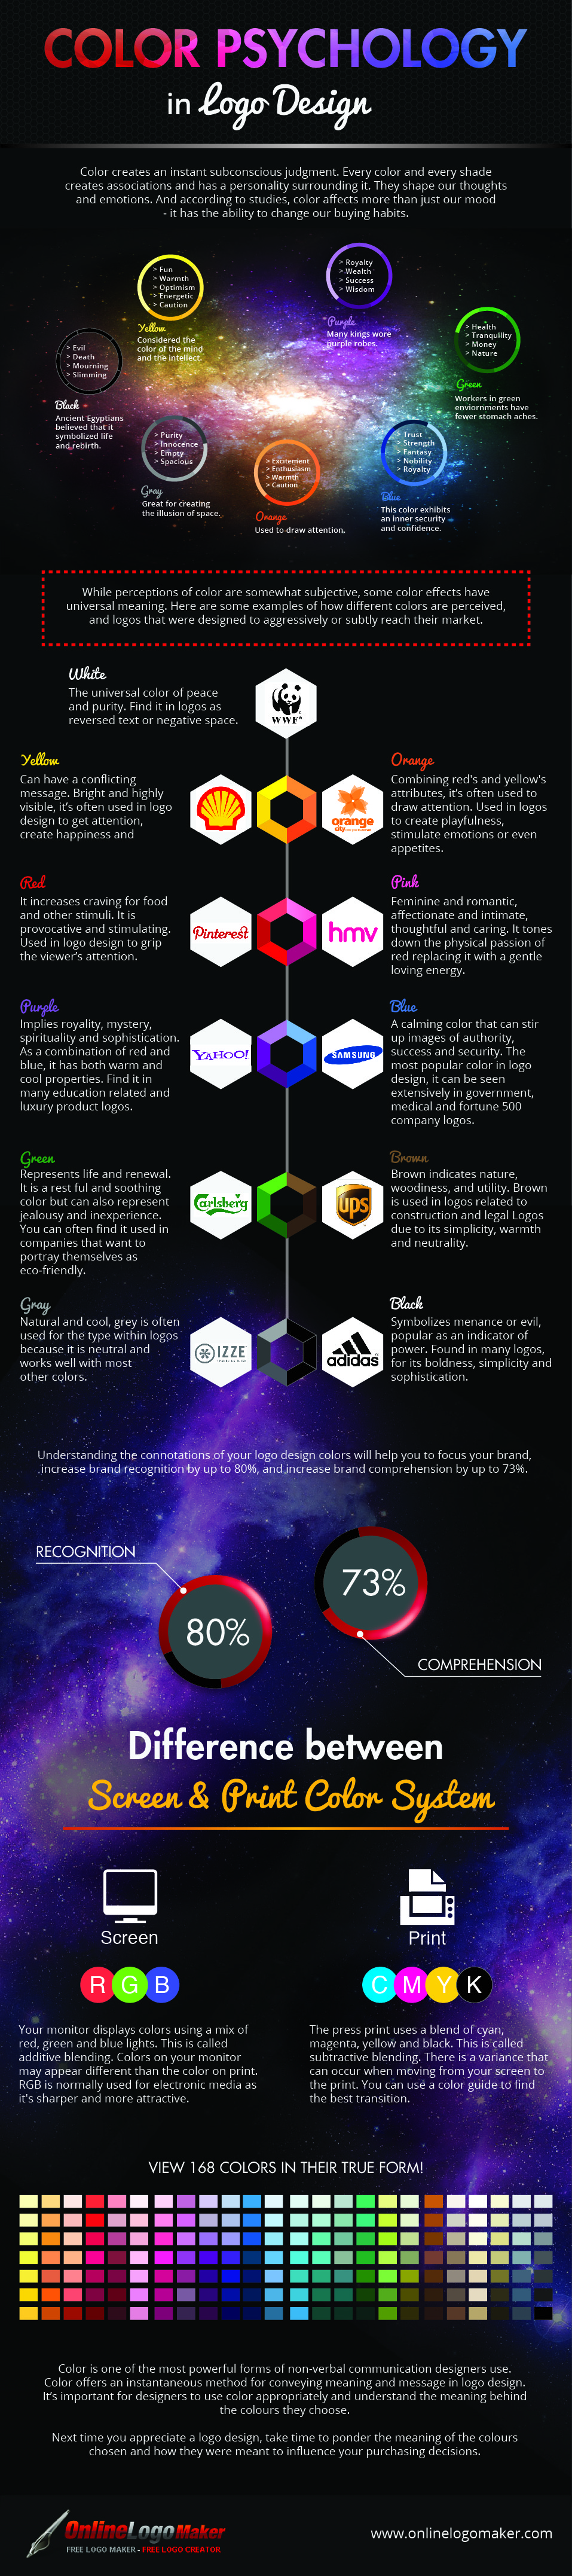 Infographic color psychology in logo design designtaxi click to view enlarged version nvjuhfo Gallery